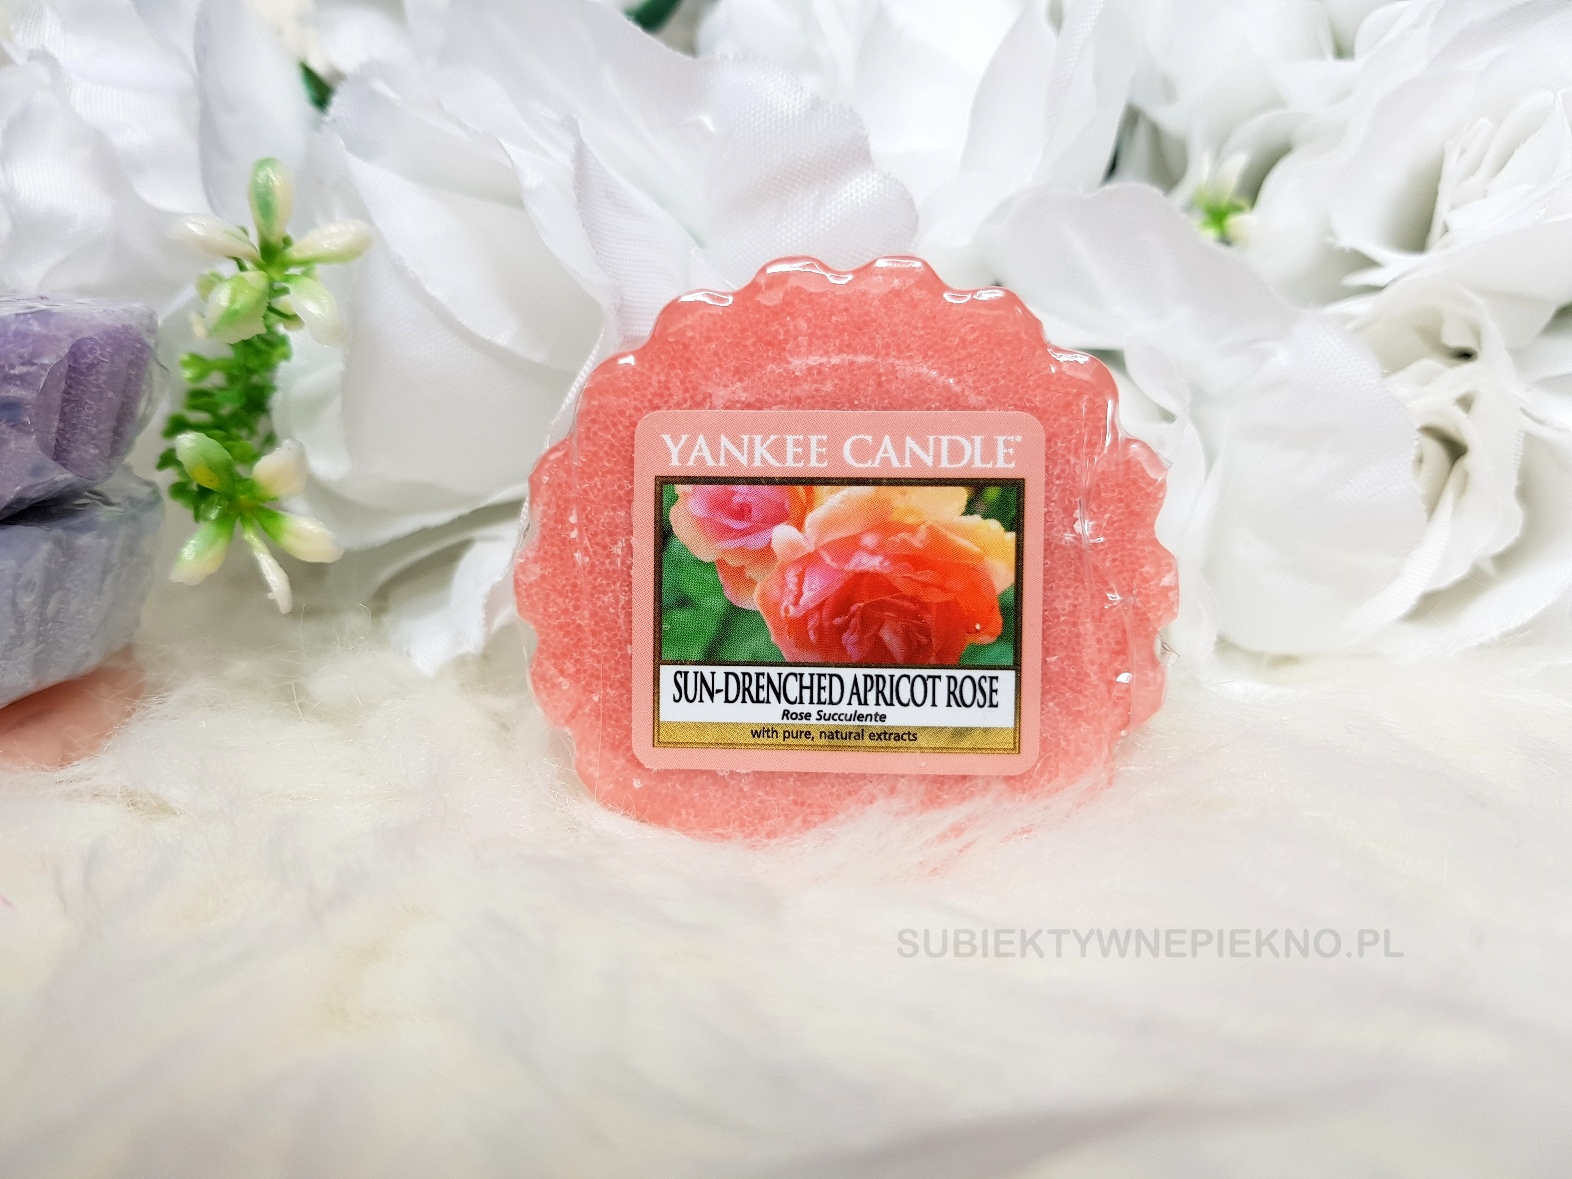 Sun-Drenched Apricot Rose Yankee Candle | Kolekcja Q1 2018 Enjoy the Simple Things